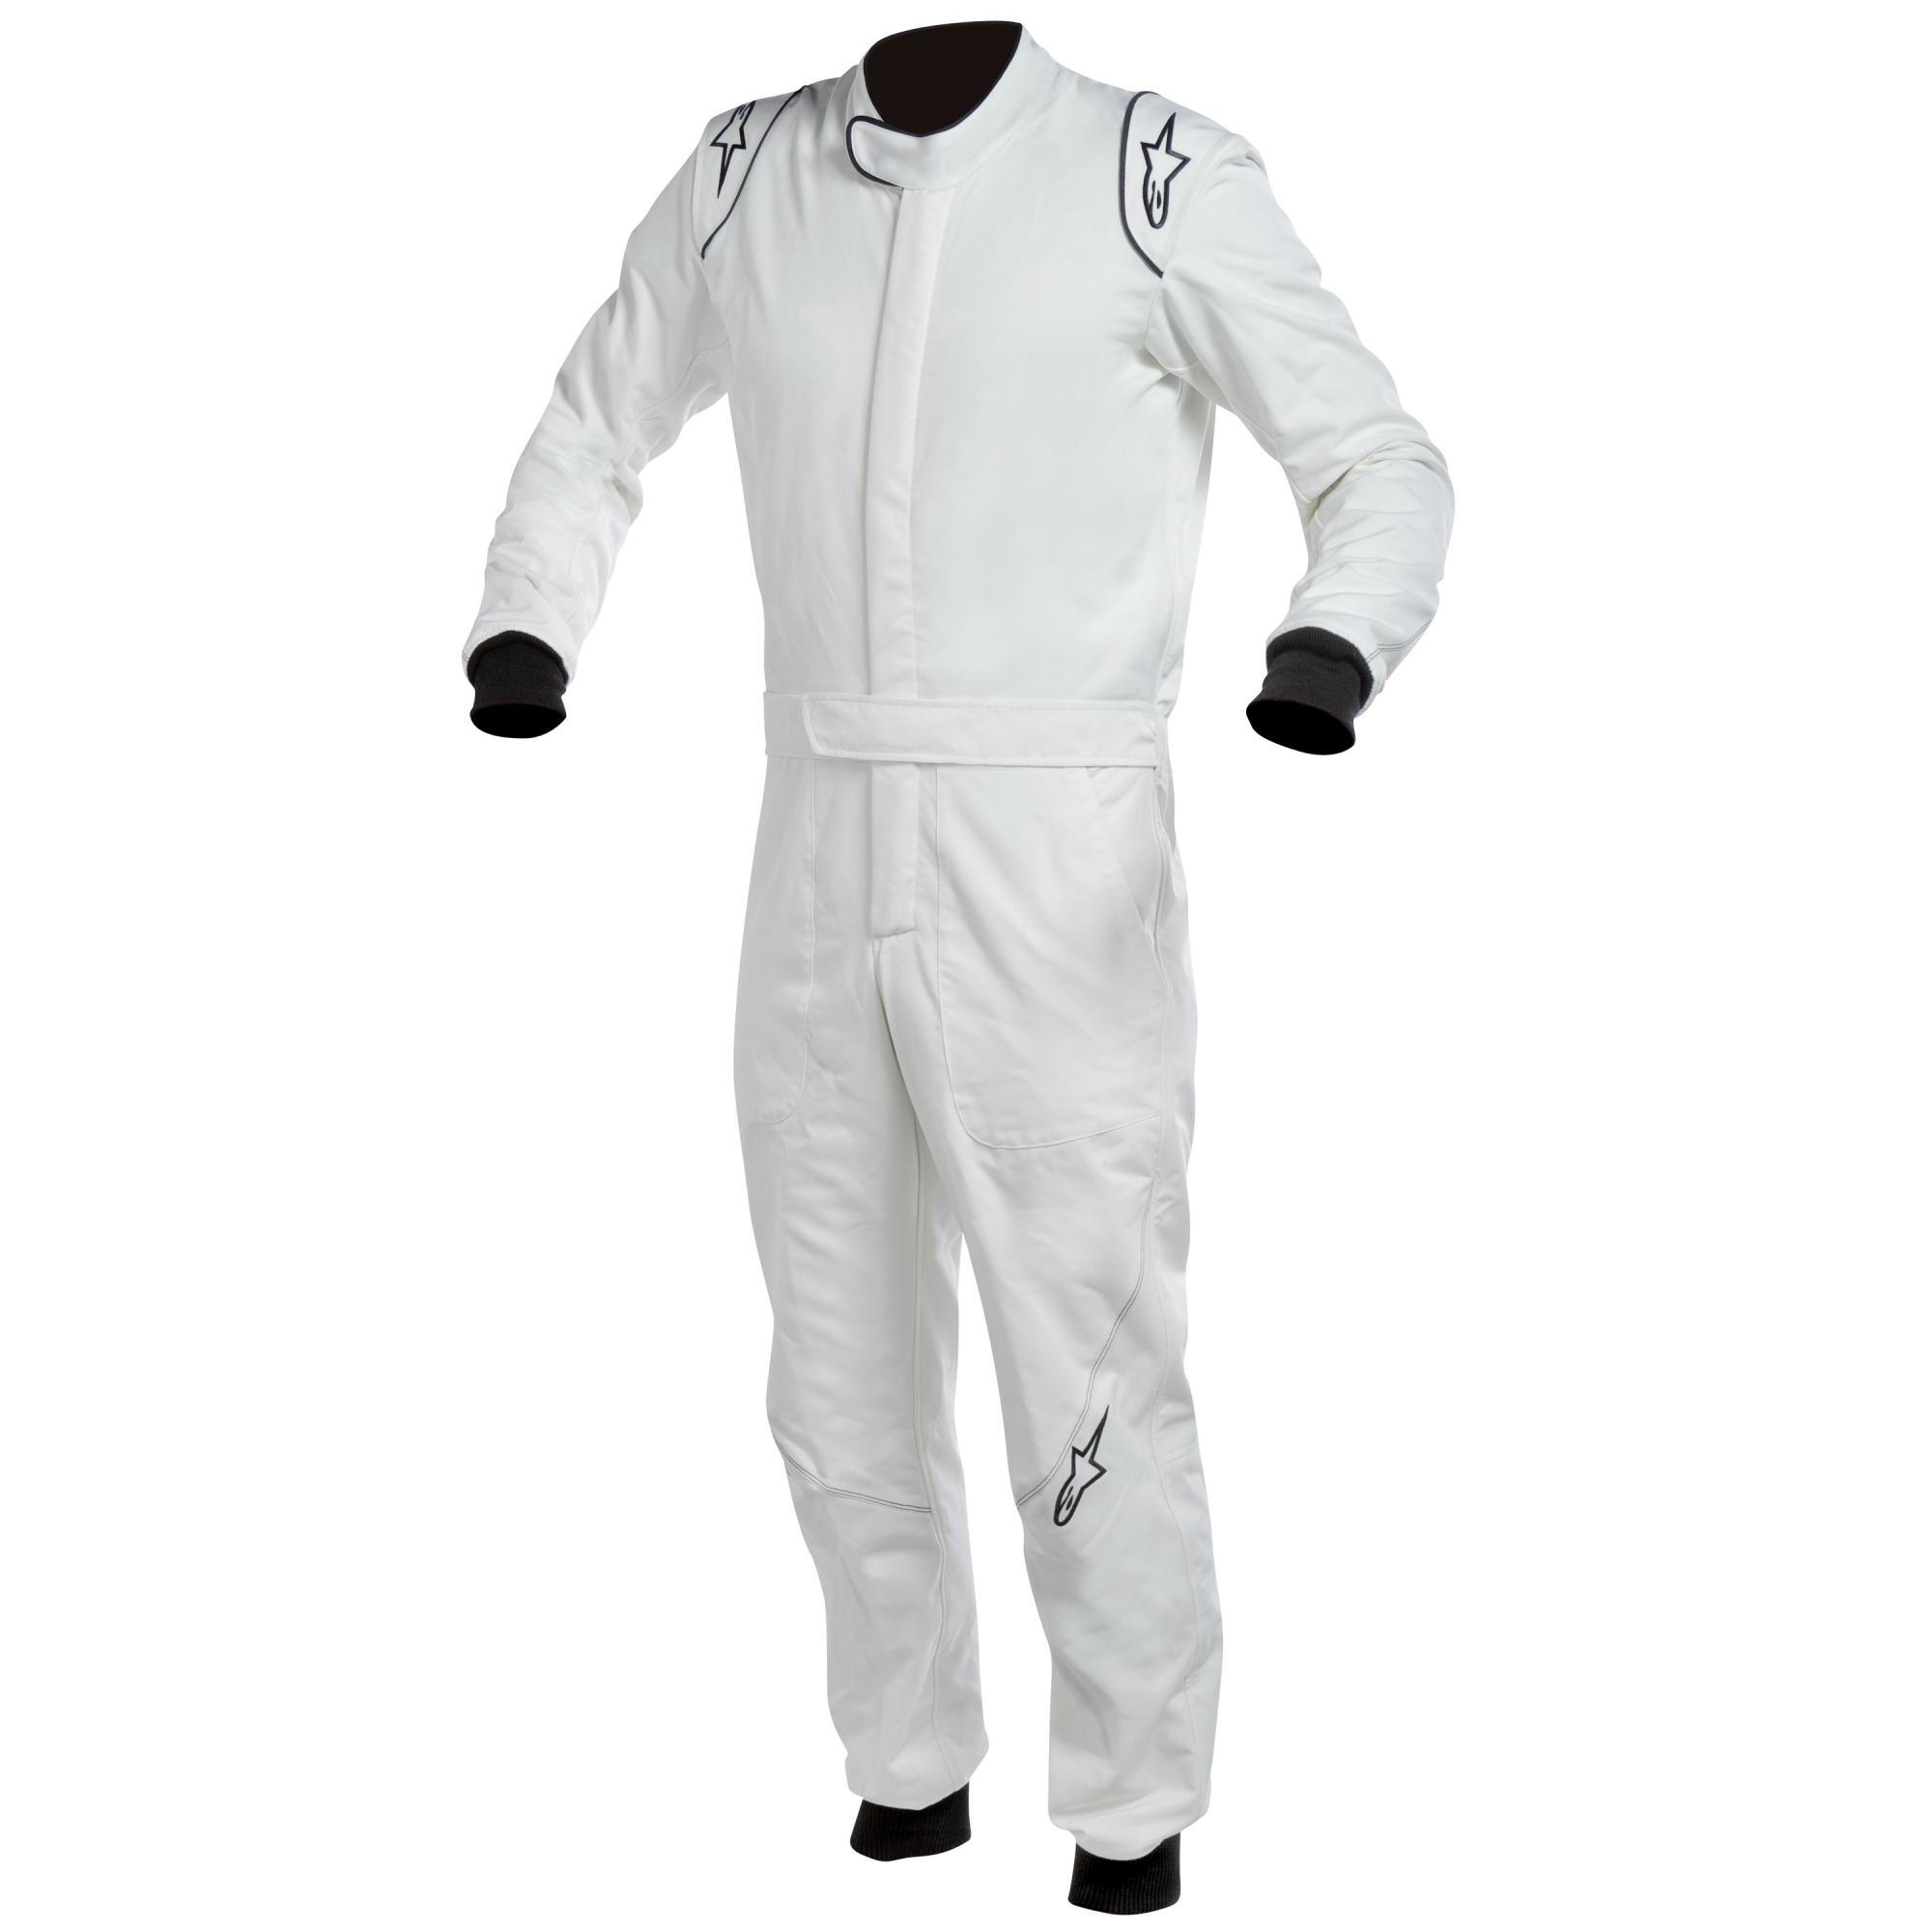 Alpinestars Sp Race Suit In White From Merlin Motorsport